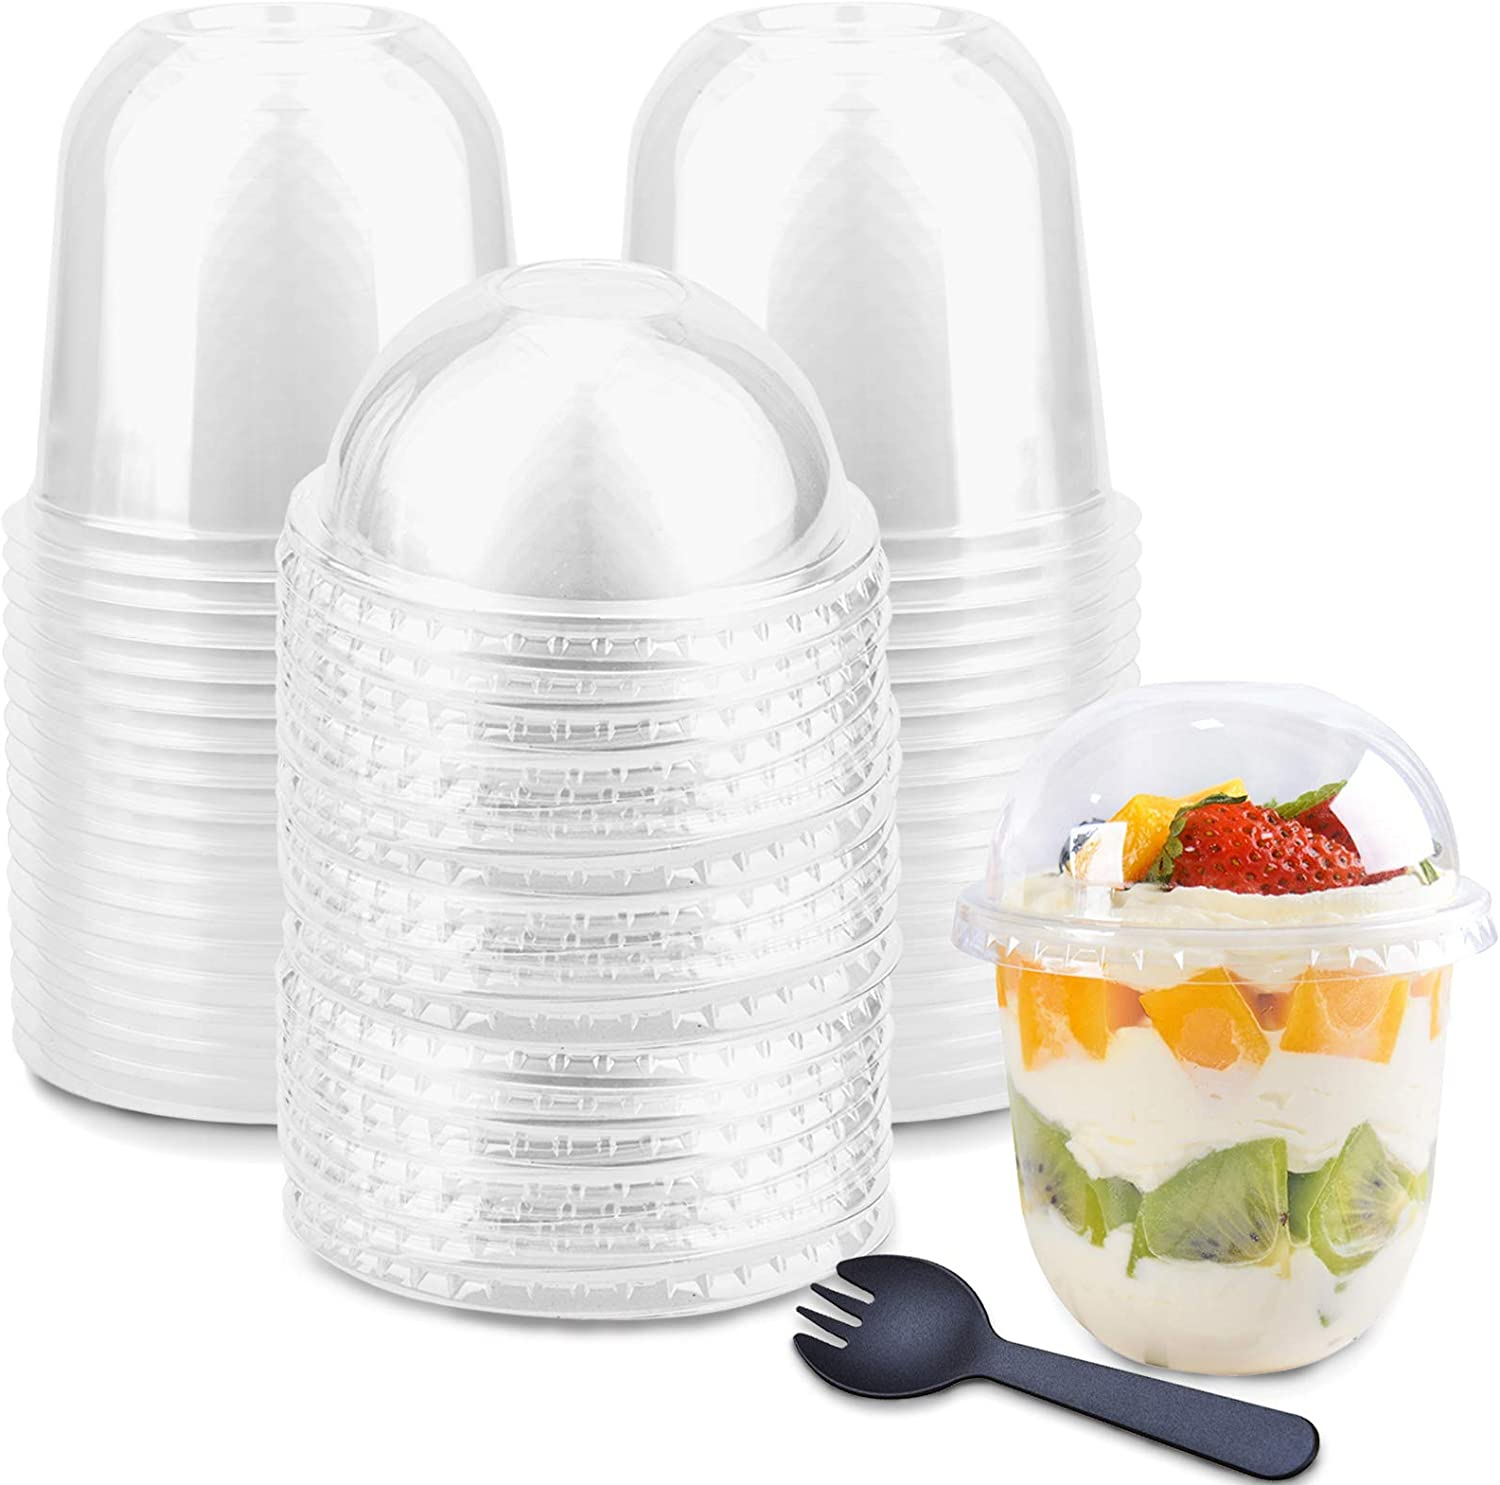 50-Pack Disposable Clear Plastic Cups with Dome Lids (No Hole), 360ml/12oz Crystal PET Dessert Cups for Ice Cream Cake Iced Cold Drinks